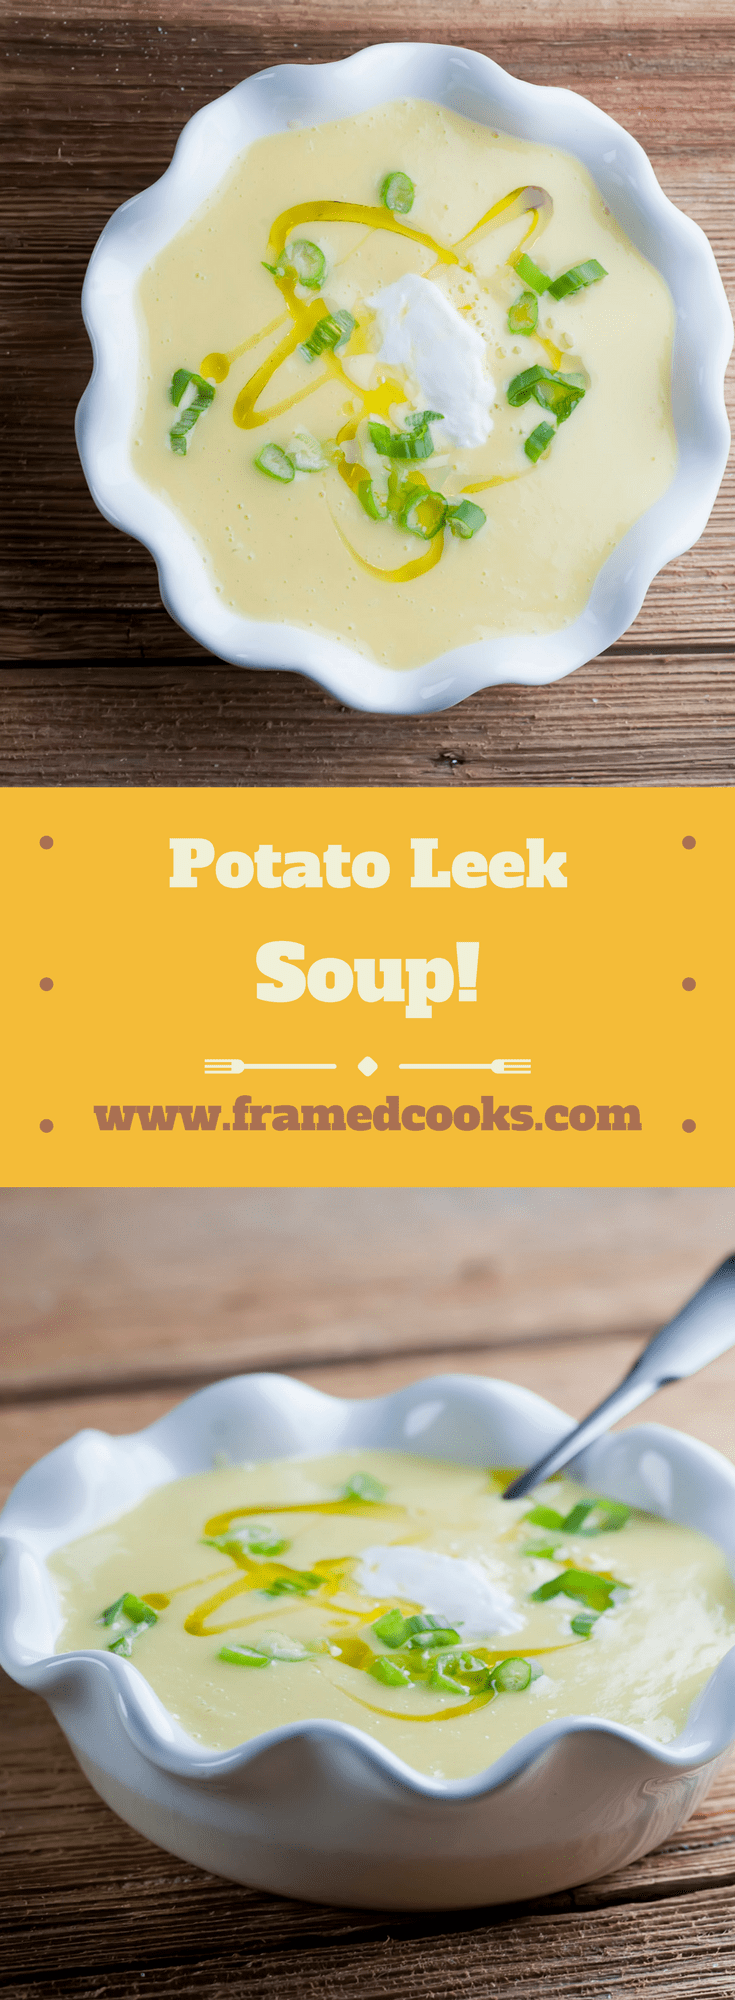 This easy recipe for potato leek soup is a great way to get in some delicious vegetables, all in a hearty, filling, delicious soup. A perfect lunch or light supper!